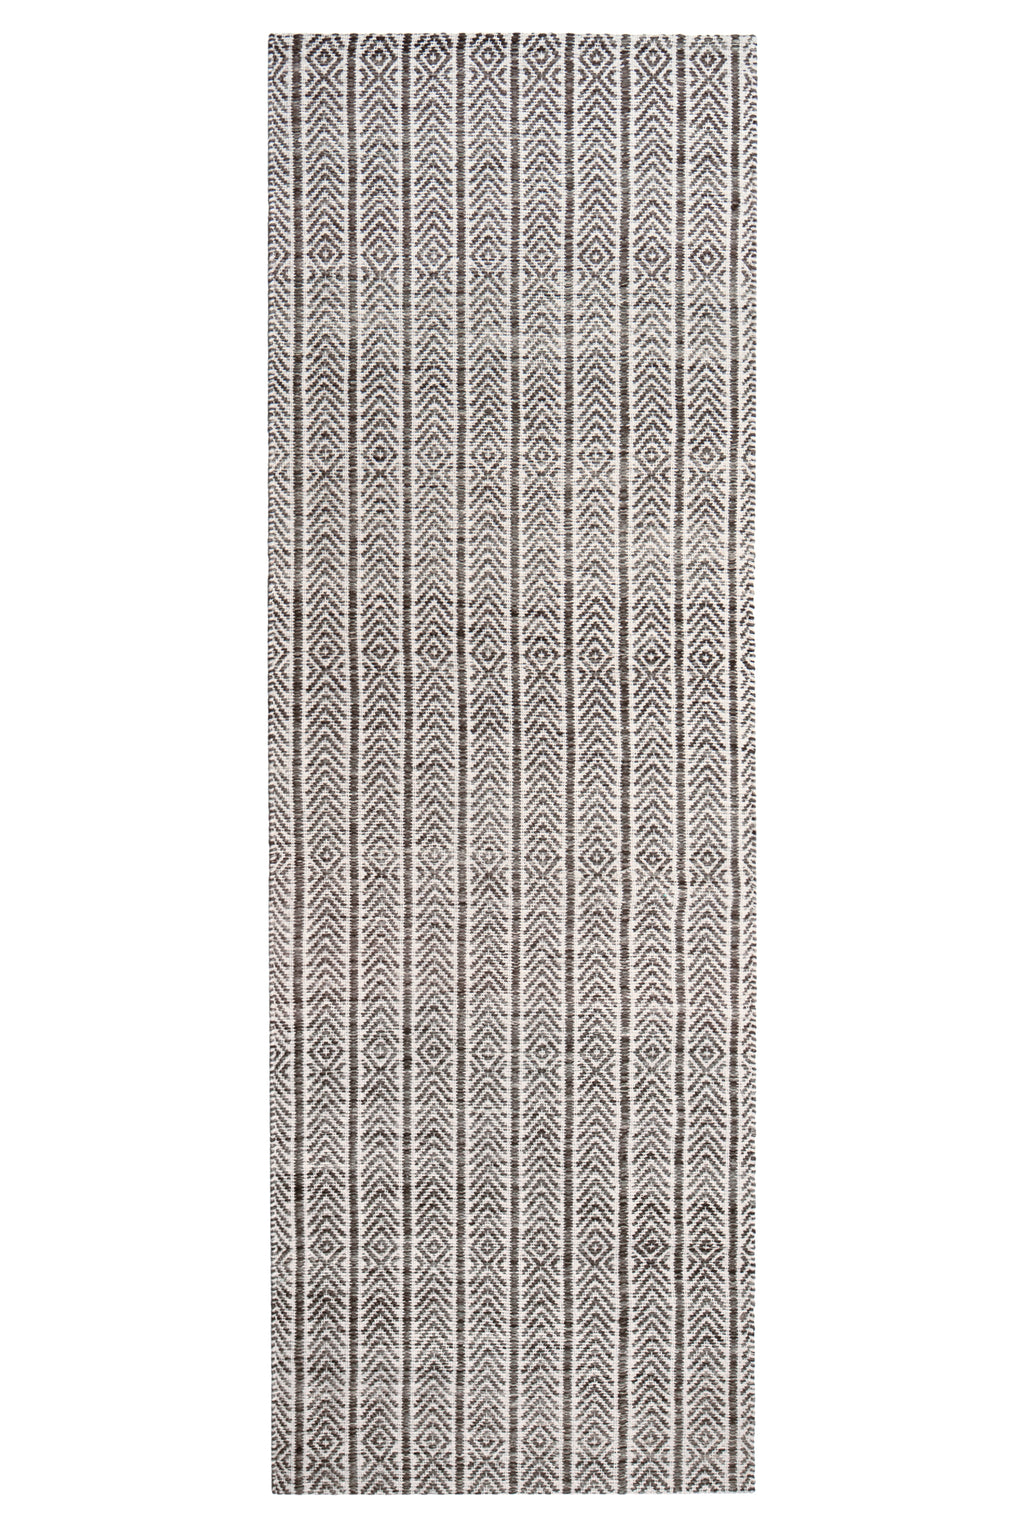 Anji Mountain Ash Area Rug